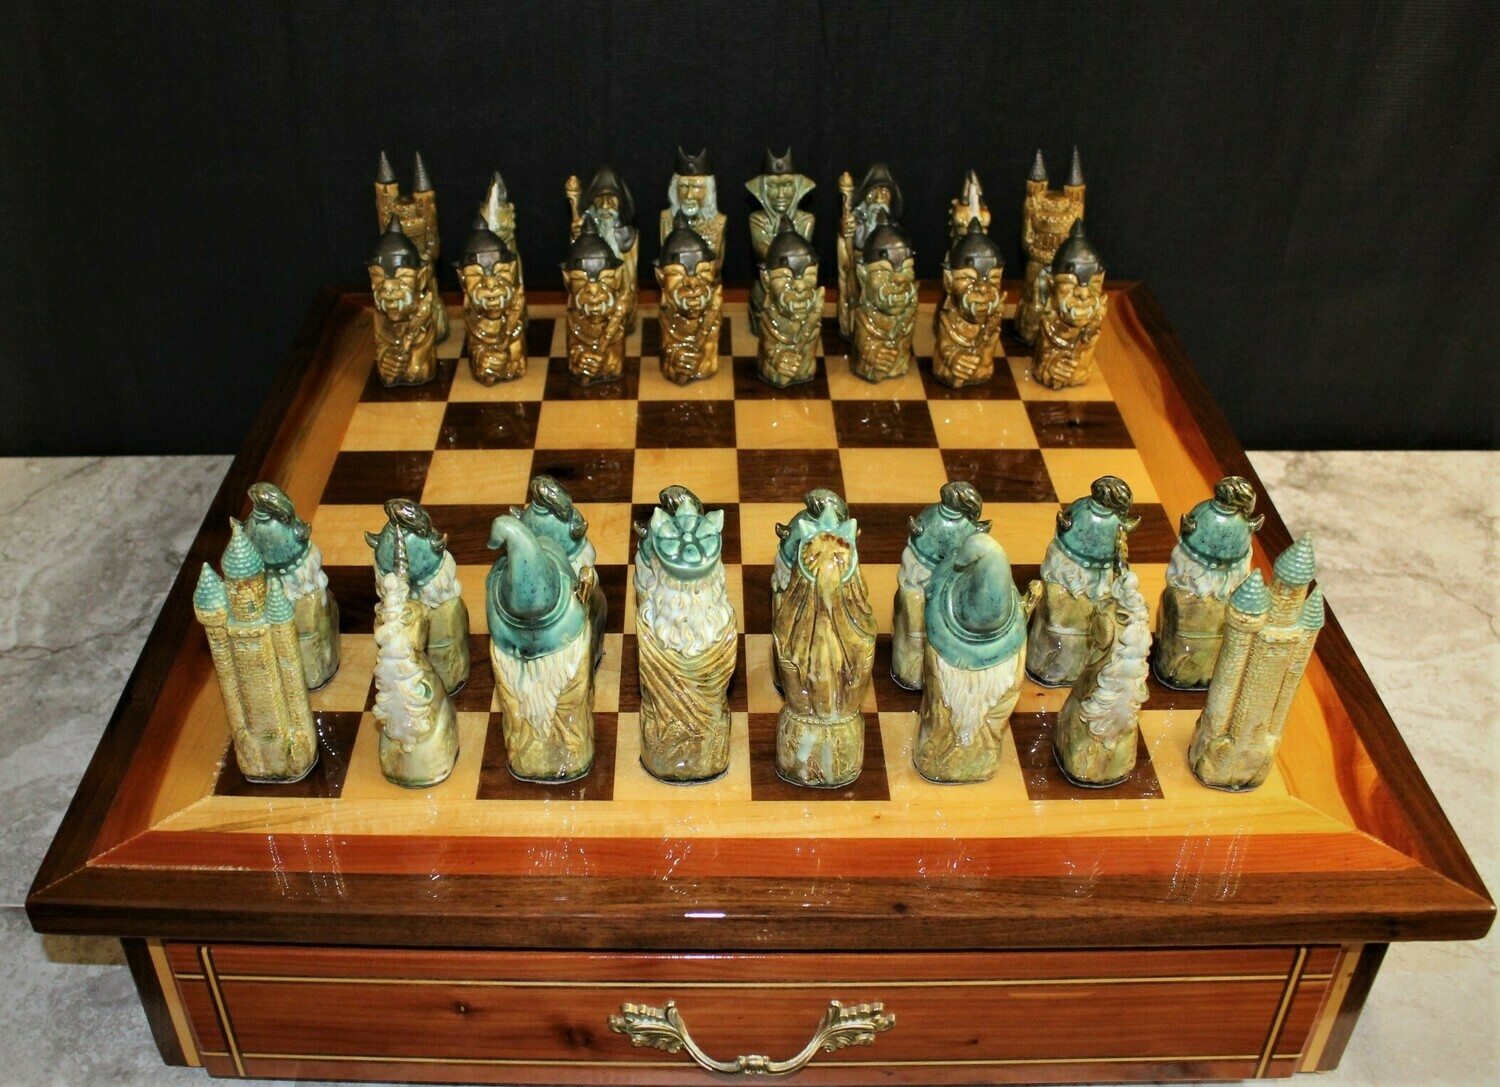 Lord of the Rings Tolkein Large Wood Inlay Chess Board Game Set Signed